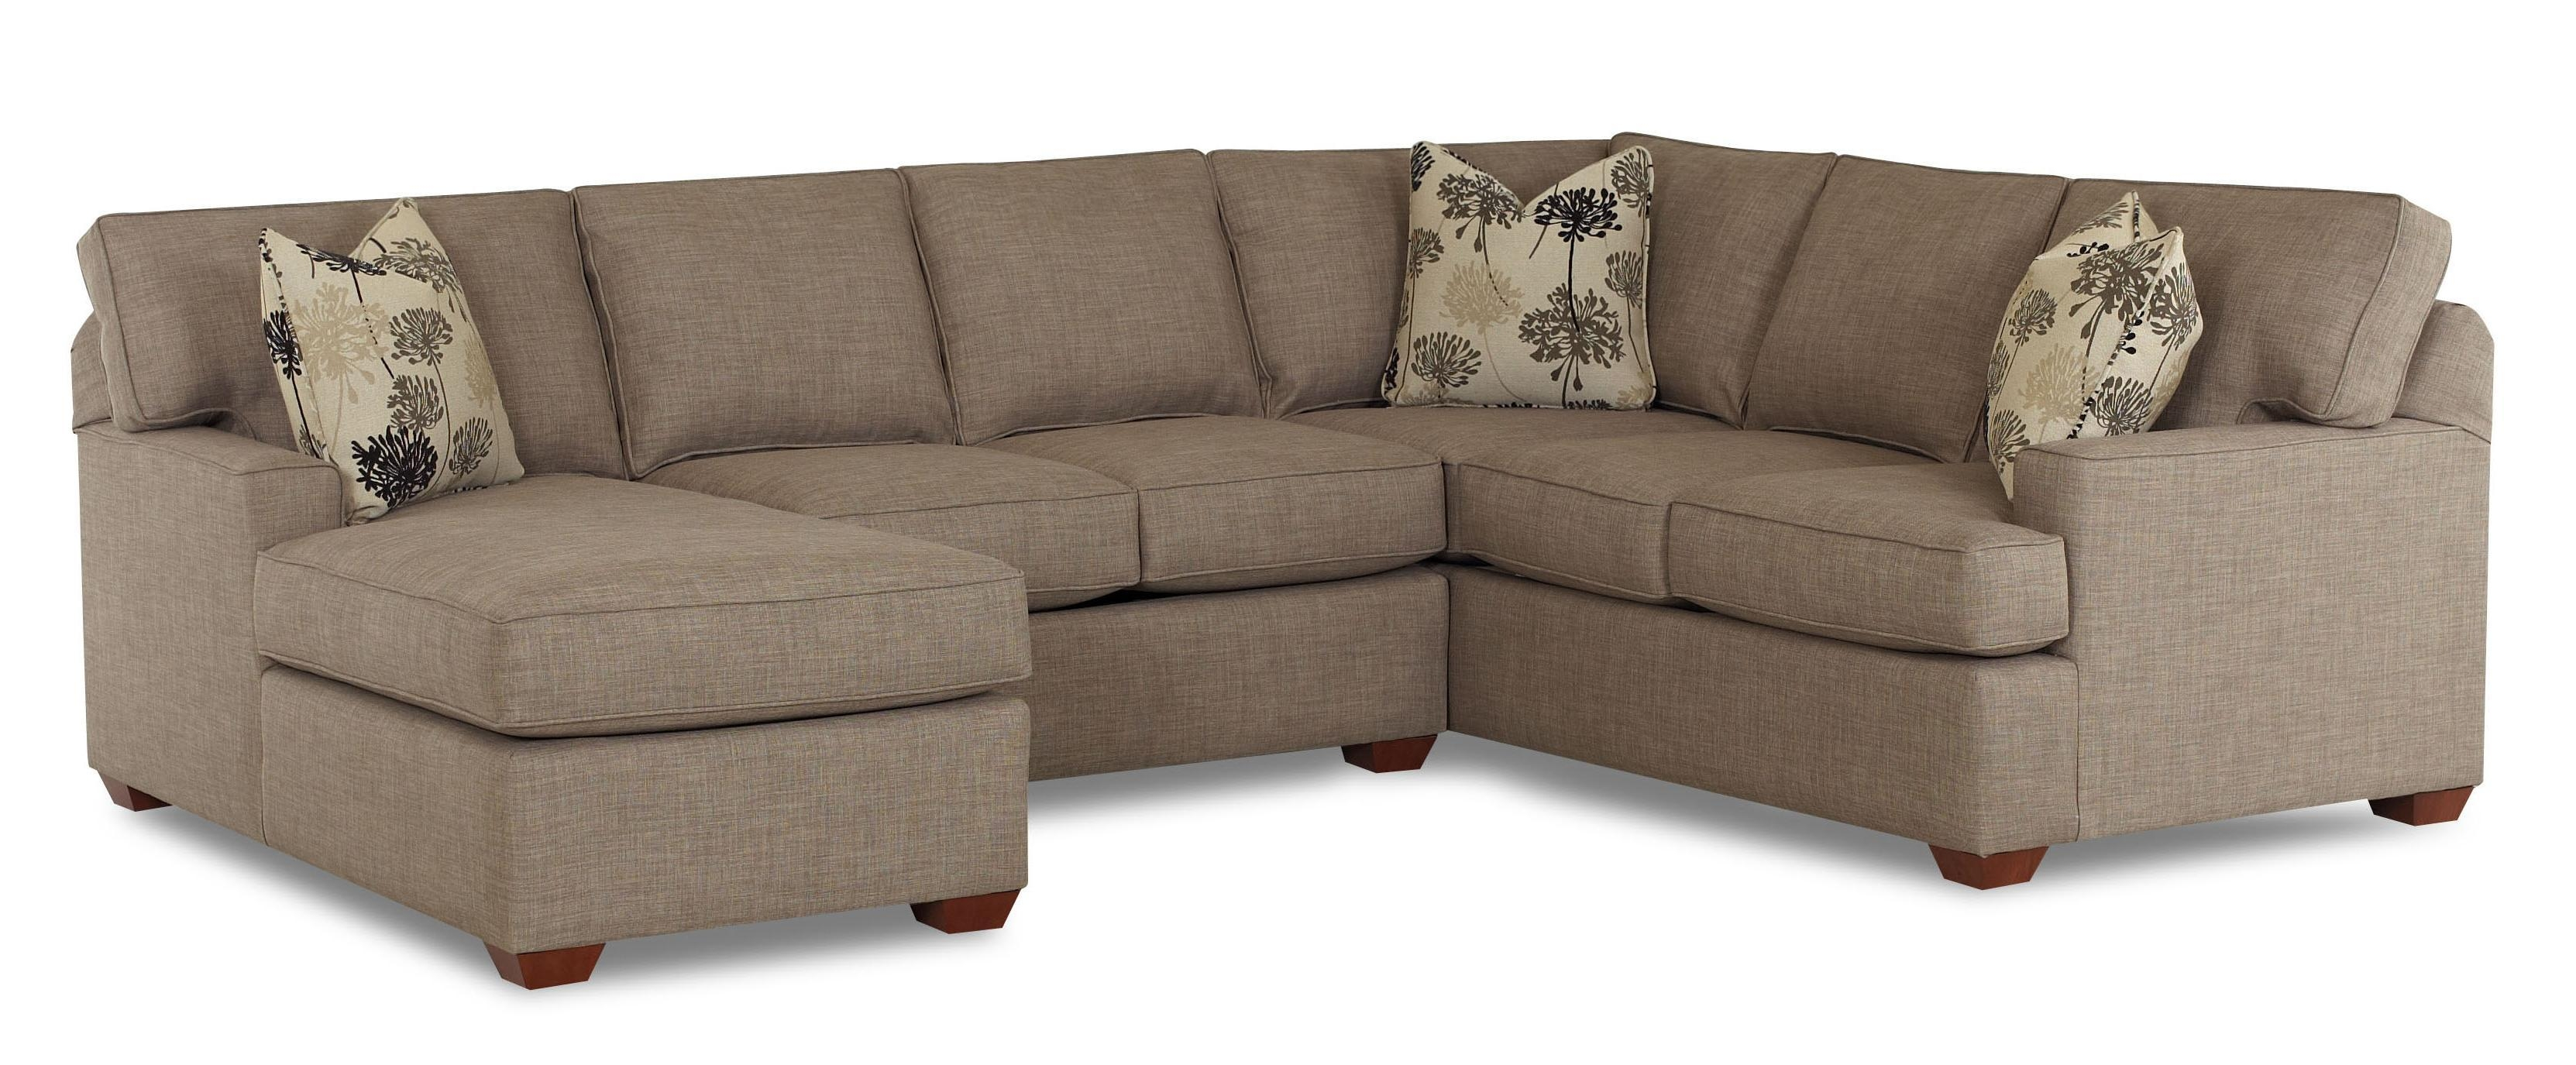 Sofas Center : 34 Unusual Most Comfortable Sectional Sofa Pictures In Unusual Sofa (View 10 of 20)